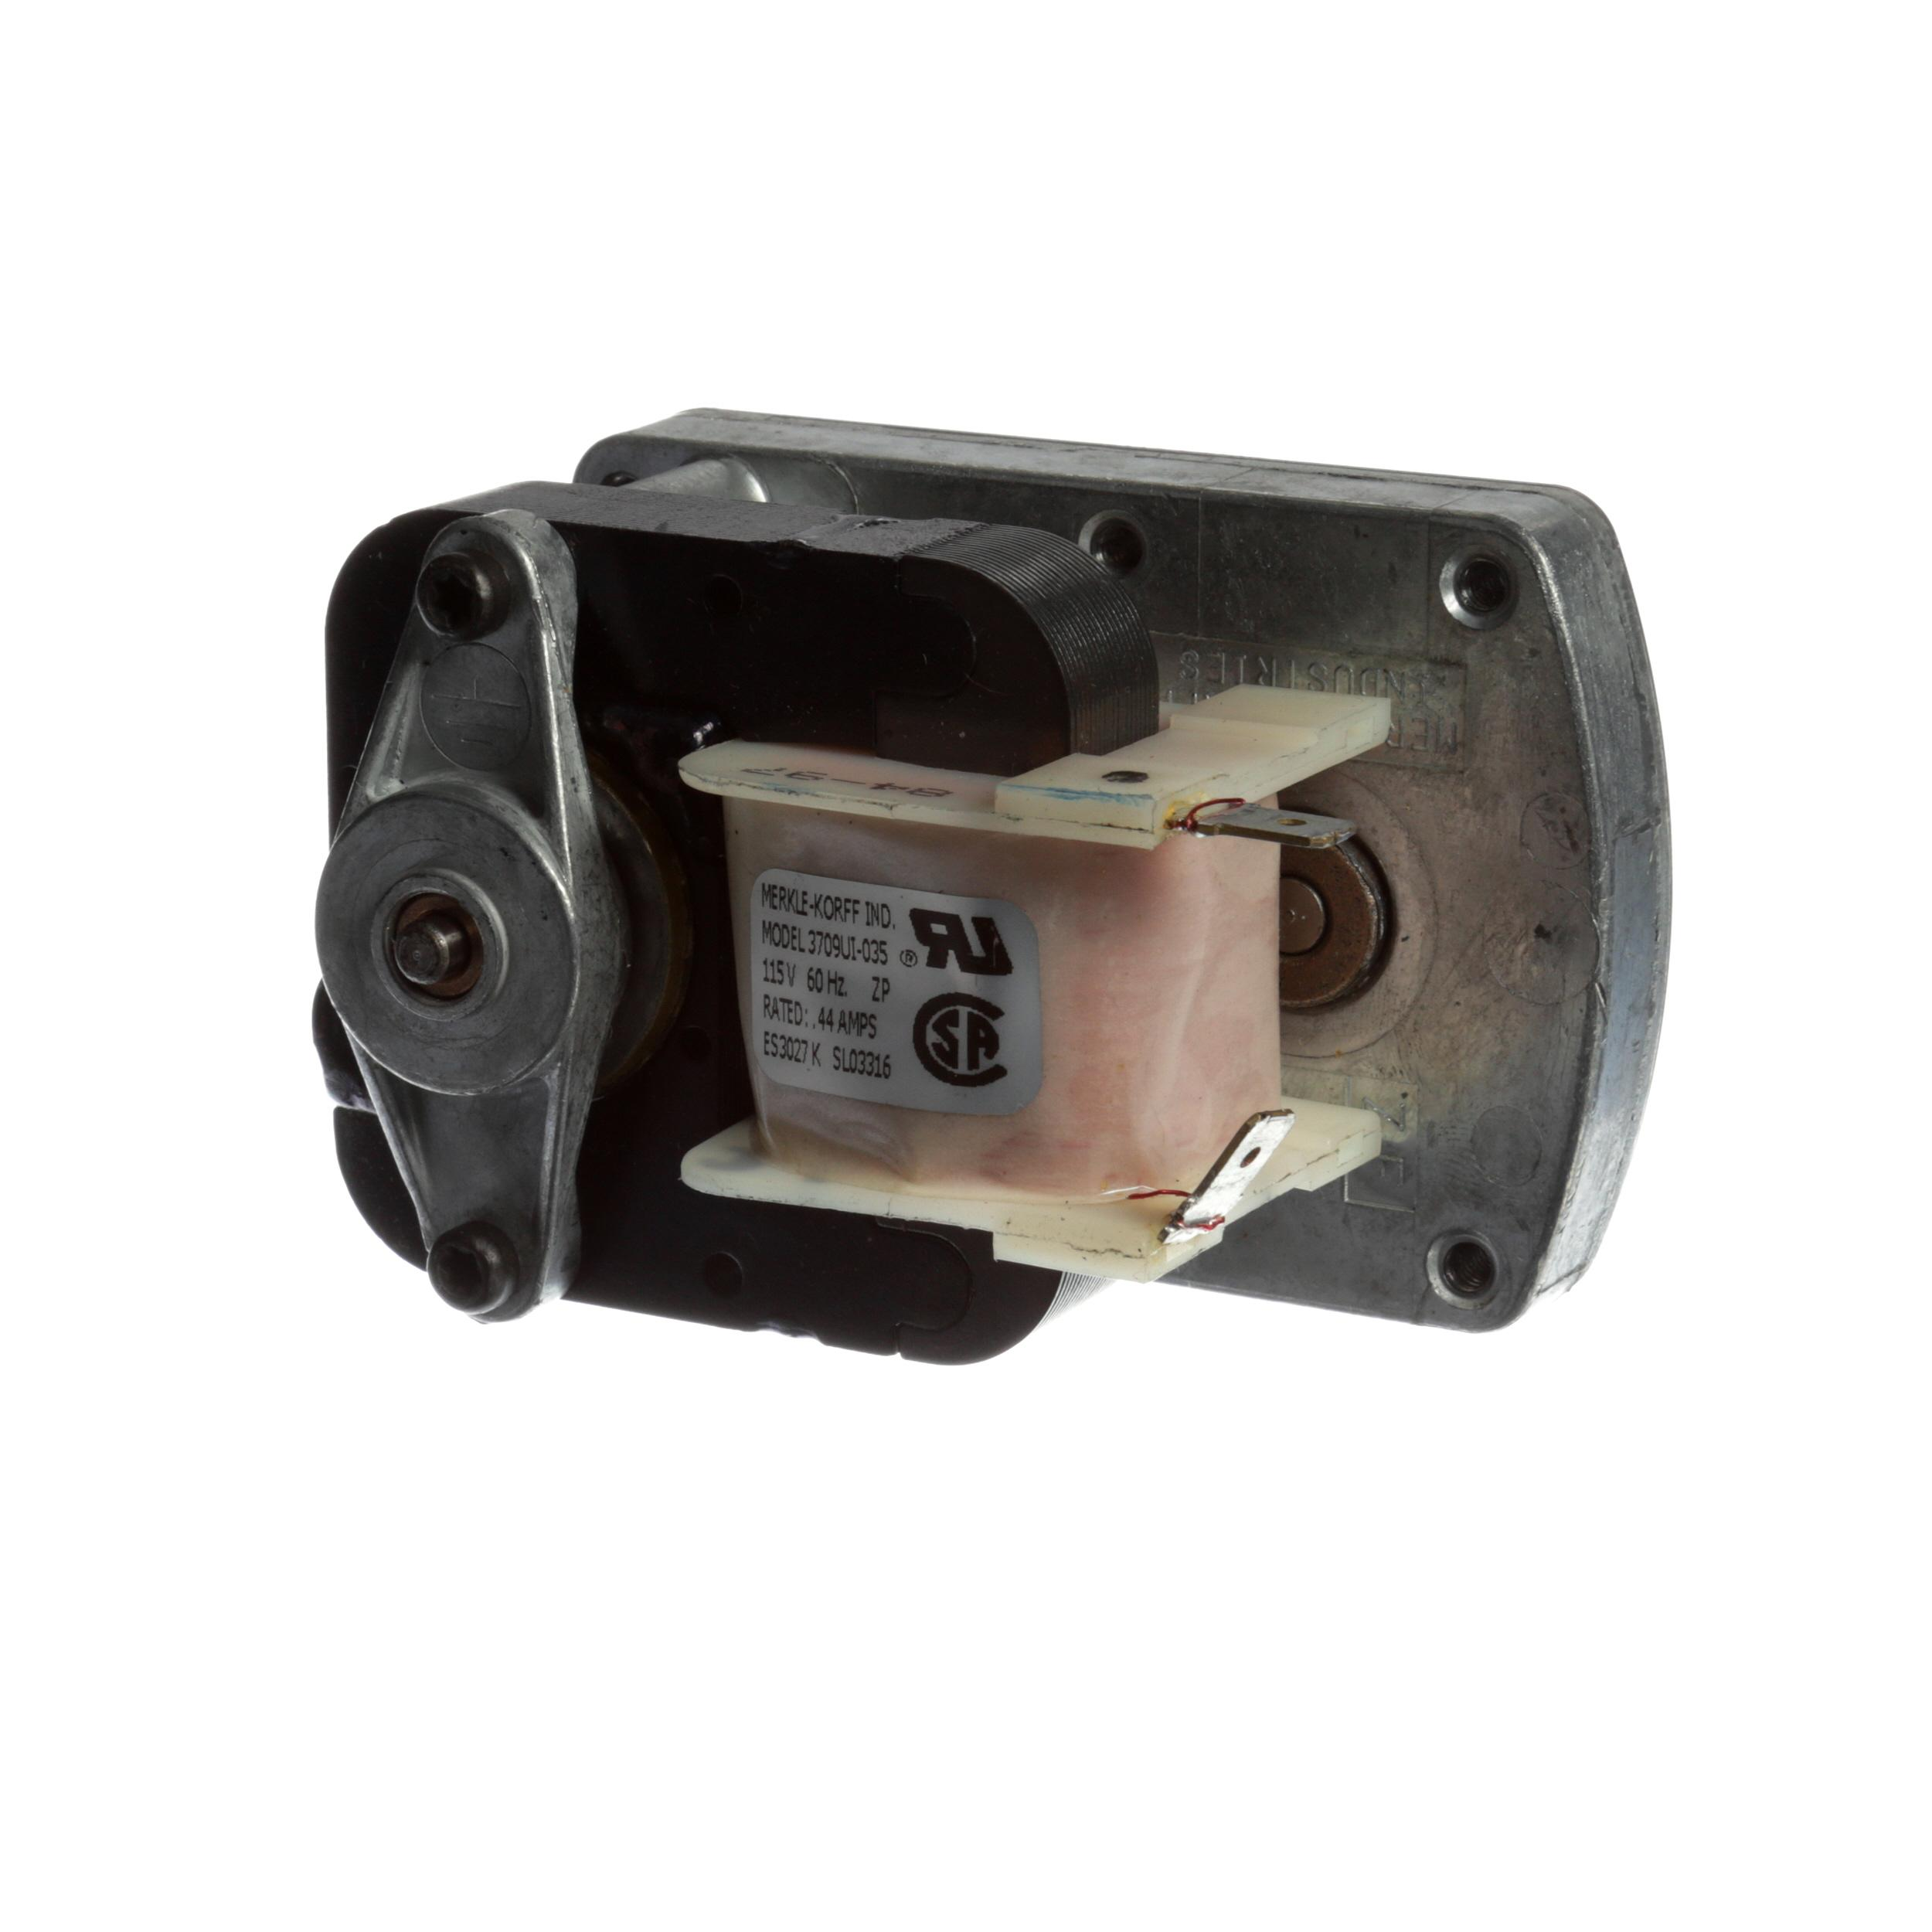 Moyer Diebel Pump Motor Part 0503756